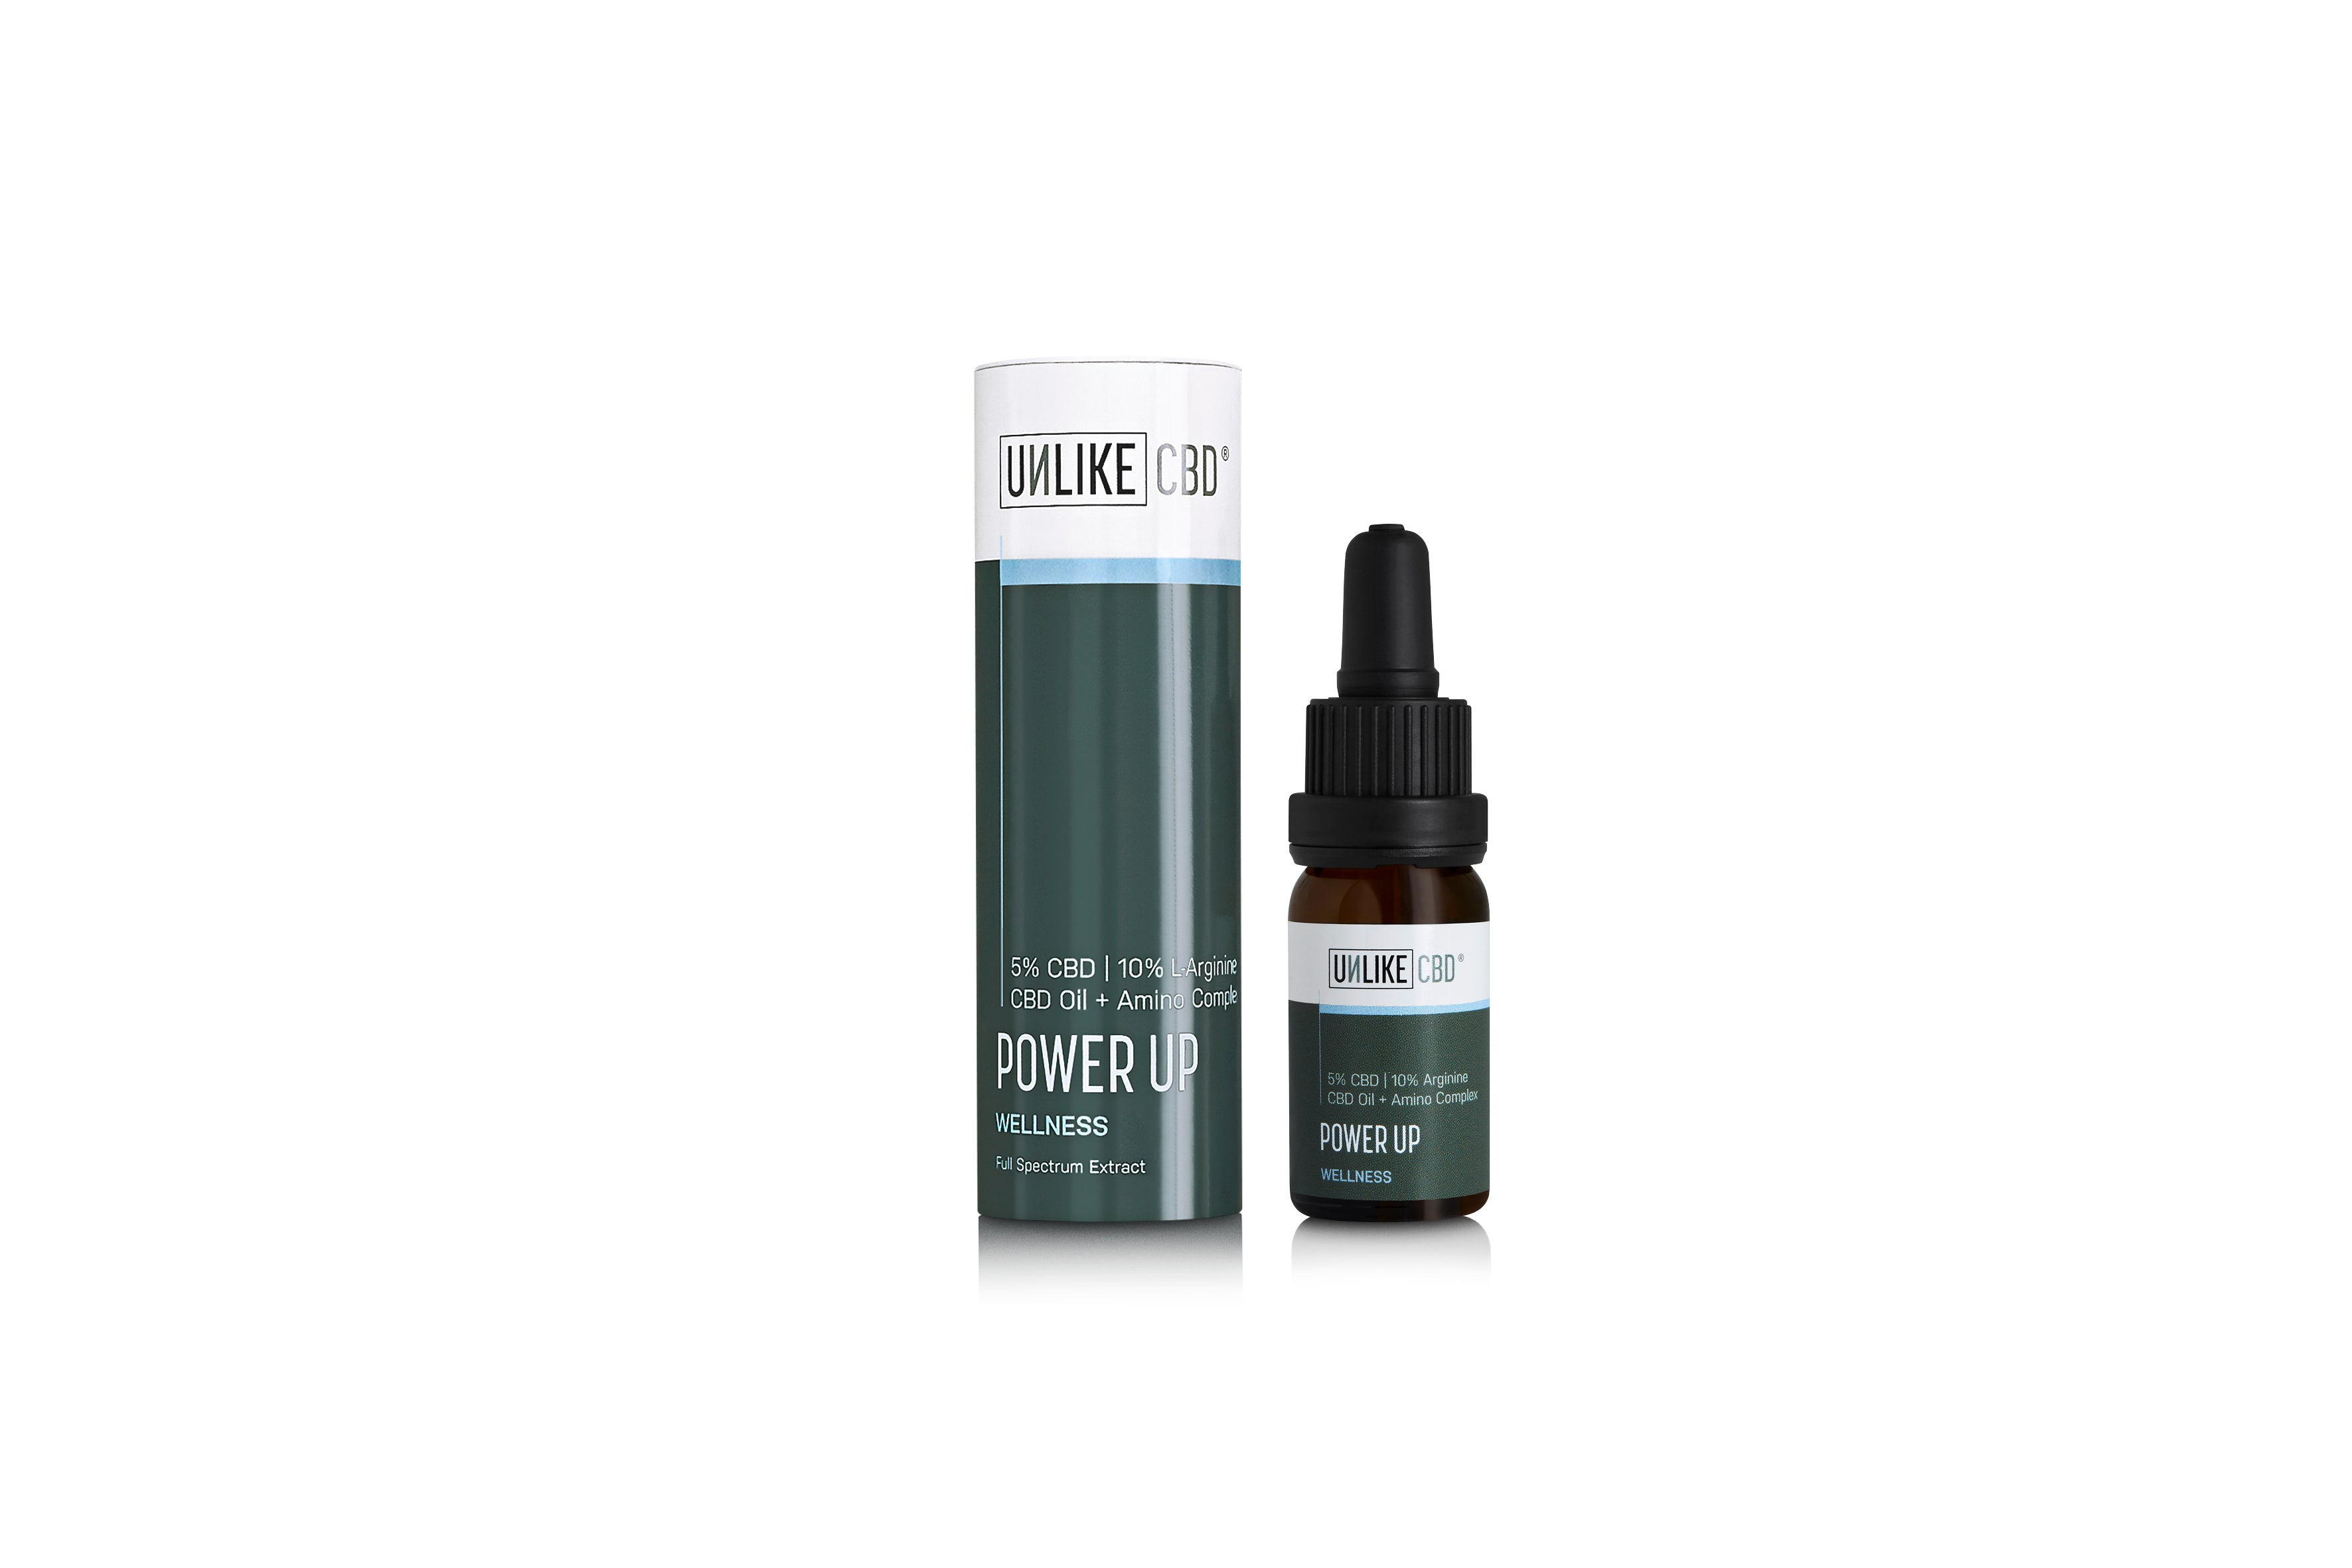 CBD Oil + Power Up (5%, 500mg CBD) | 10ml